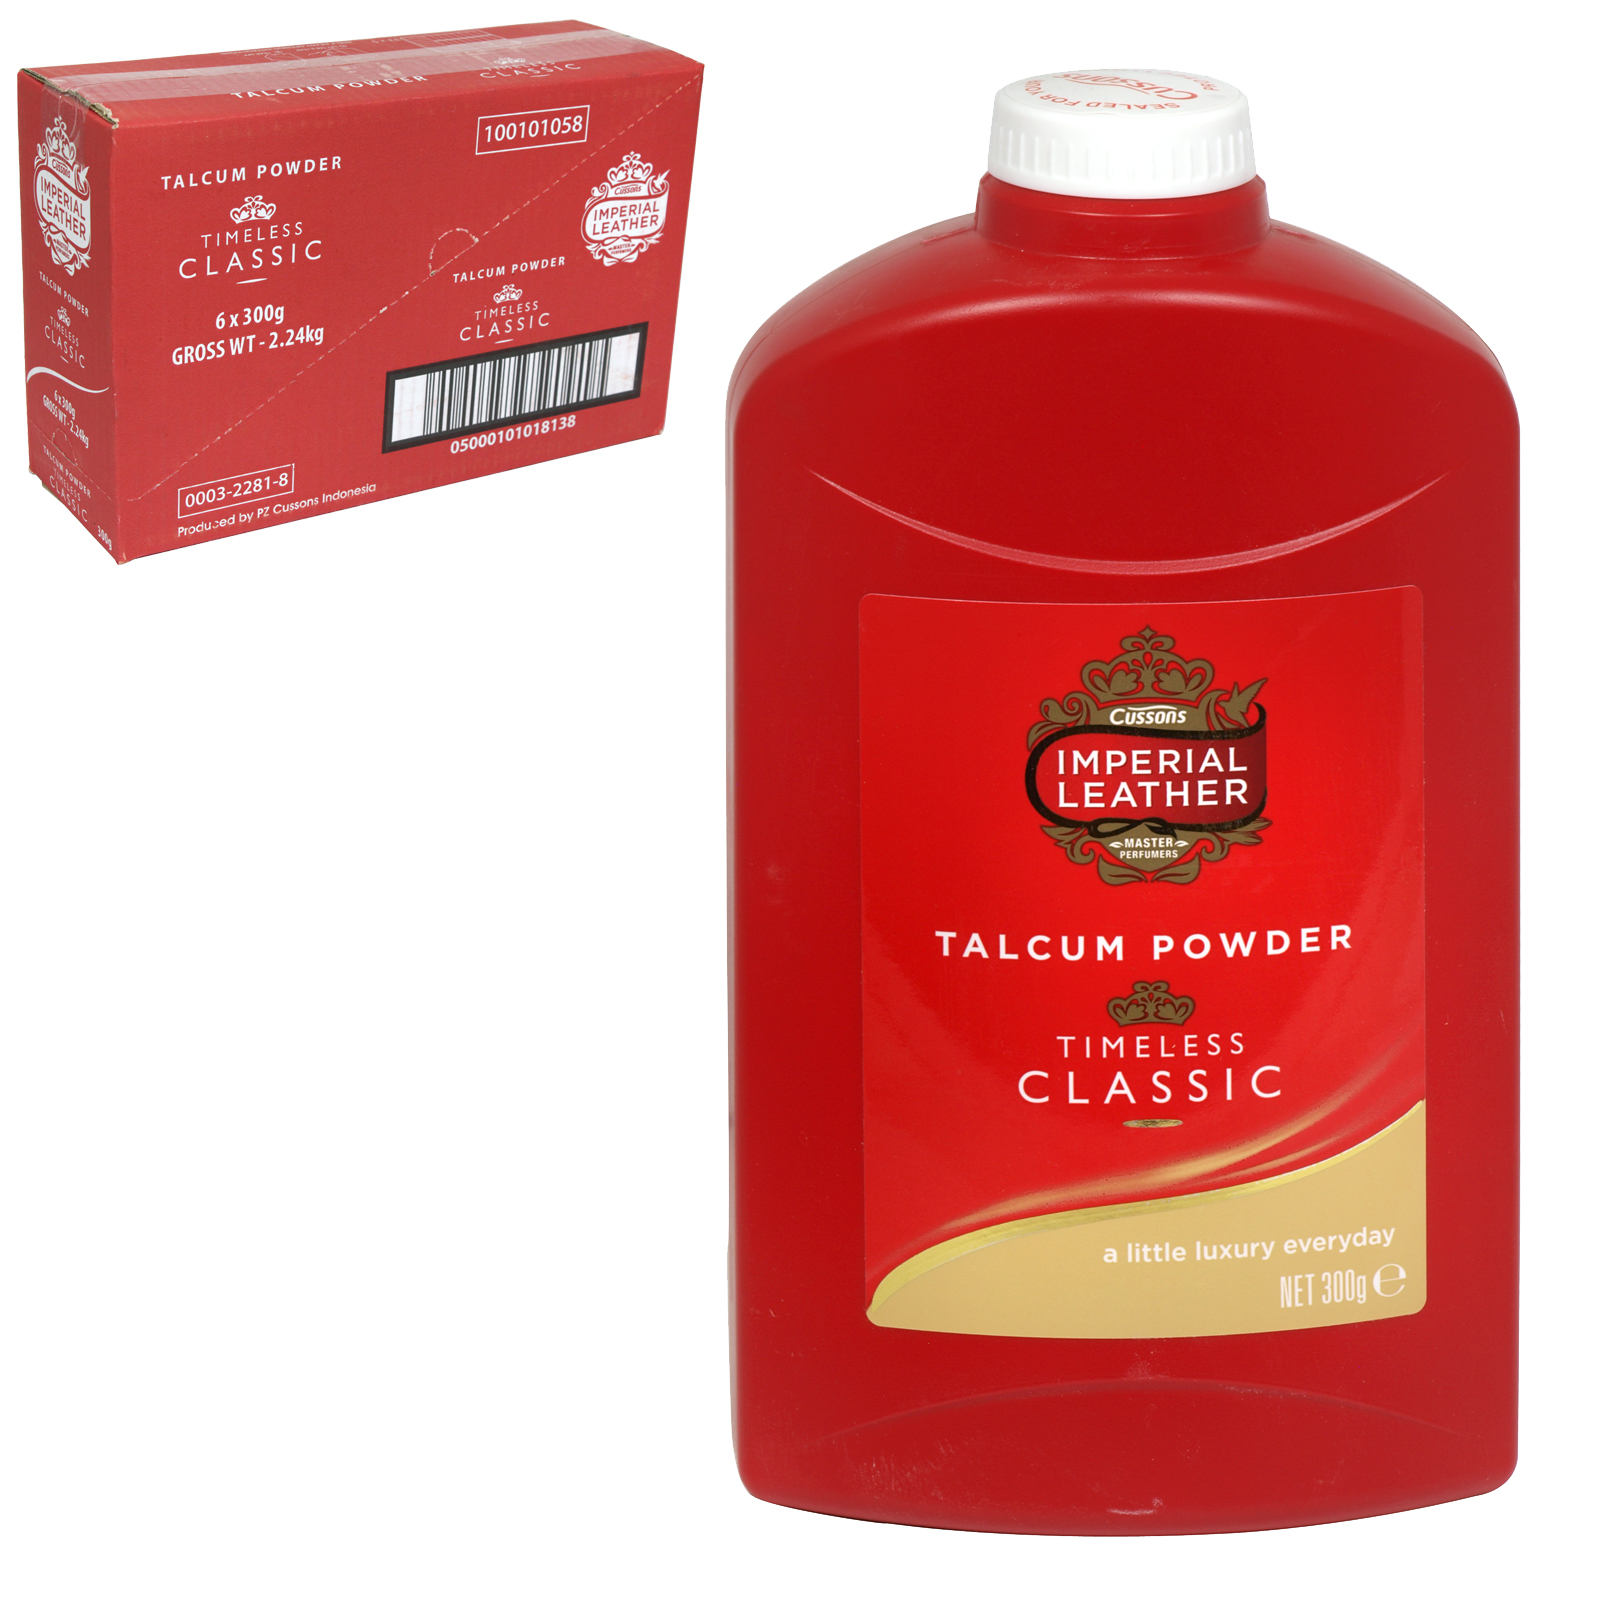 IMPERIAL LEATHER TALC 300GM ORIGINAL TIMELESS CLASSIC  X6